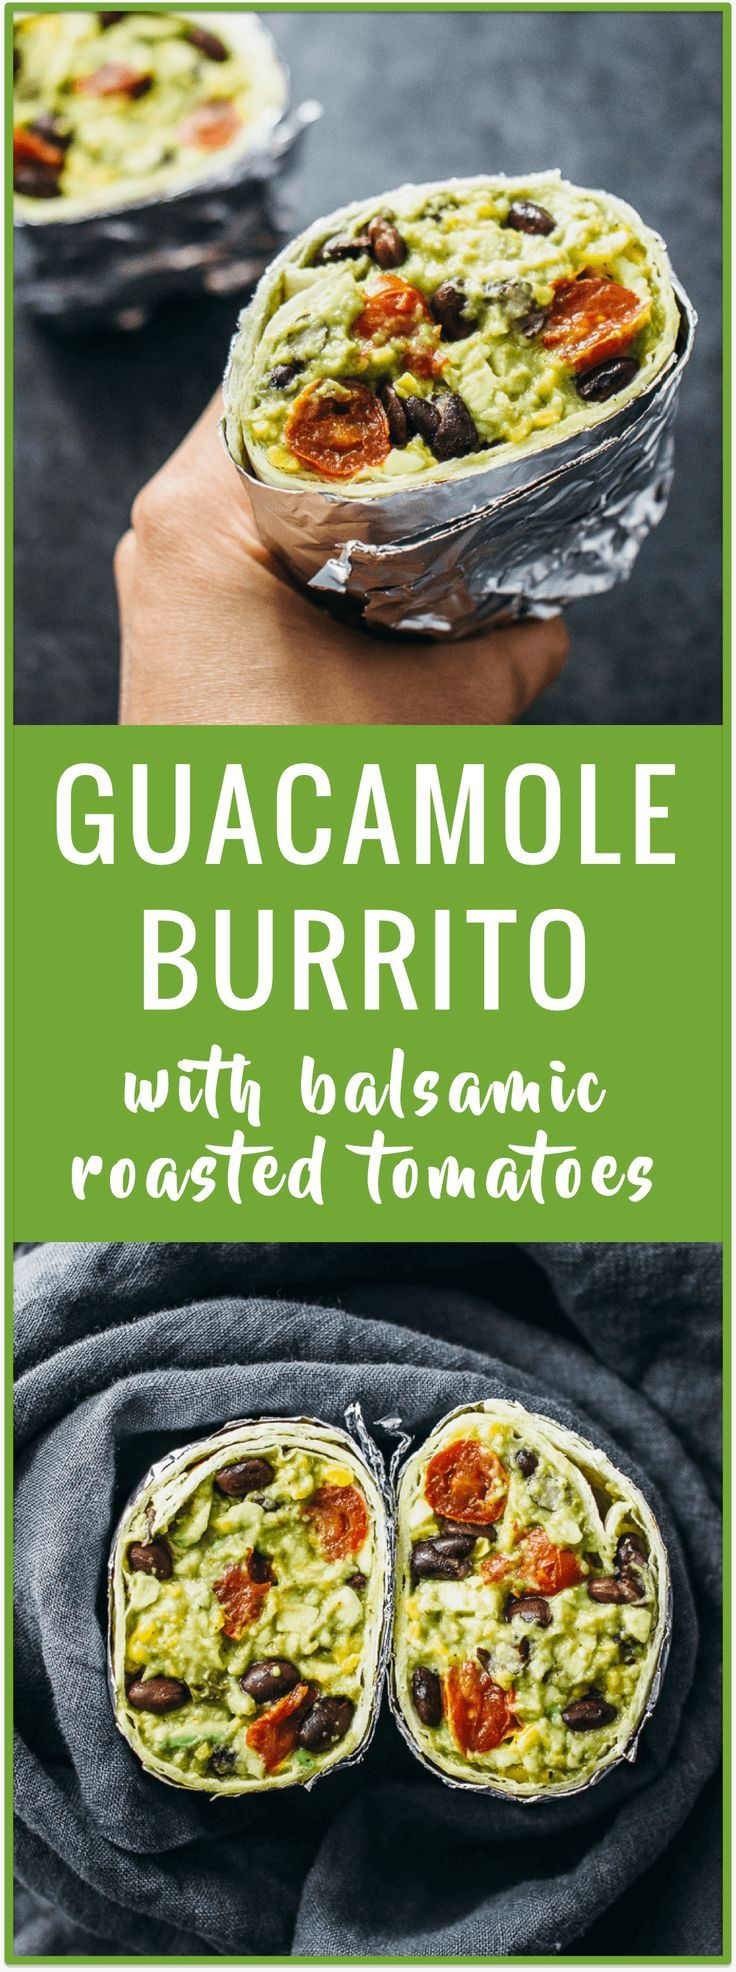 Guacamole burrito with balsamic roasted tomatoes and black beans - This vegan Mexican-inspired recipe features a savory guacamole burrito loaded with balsamic roasted tomatoes, black beans, and garlic